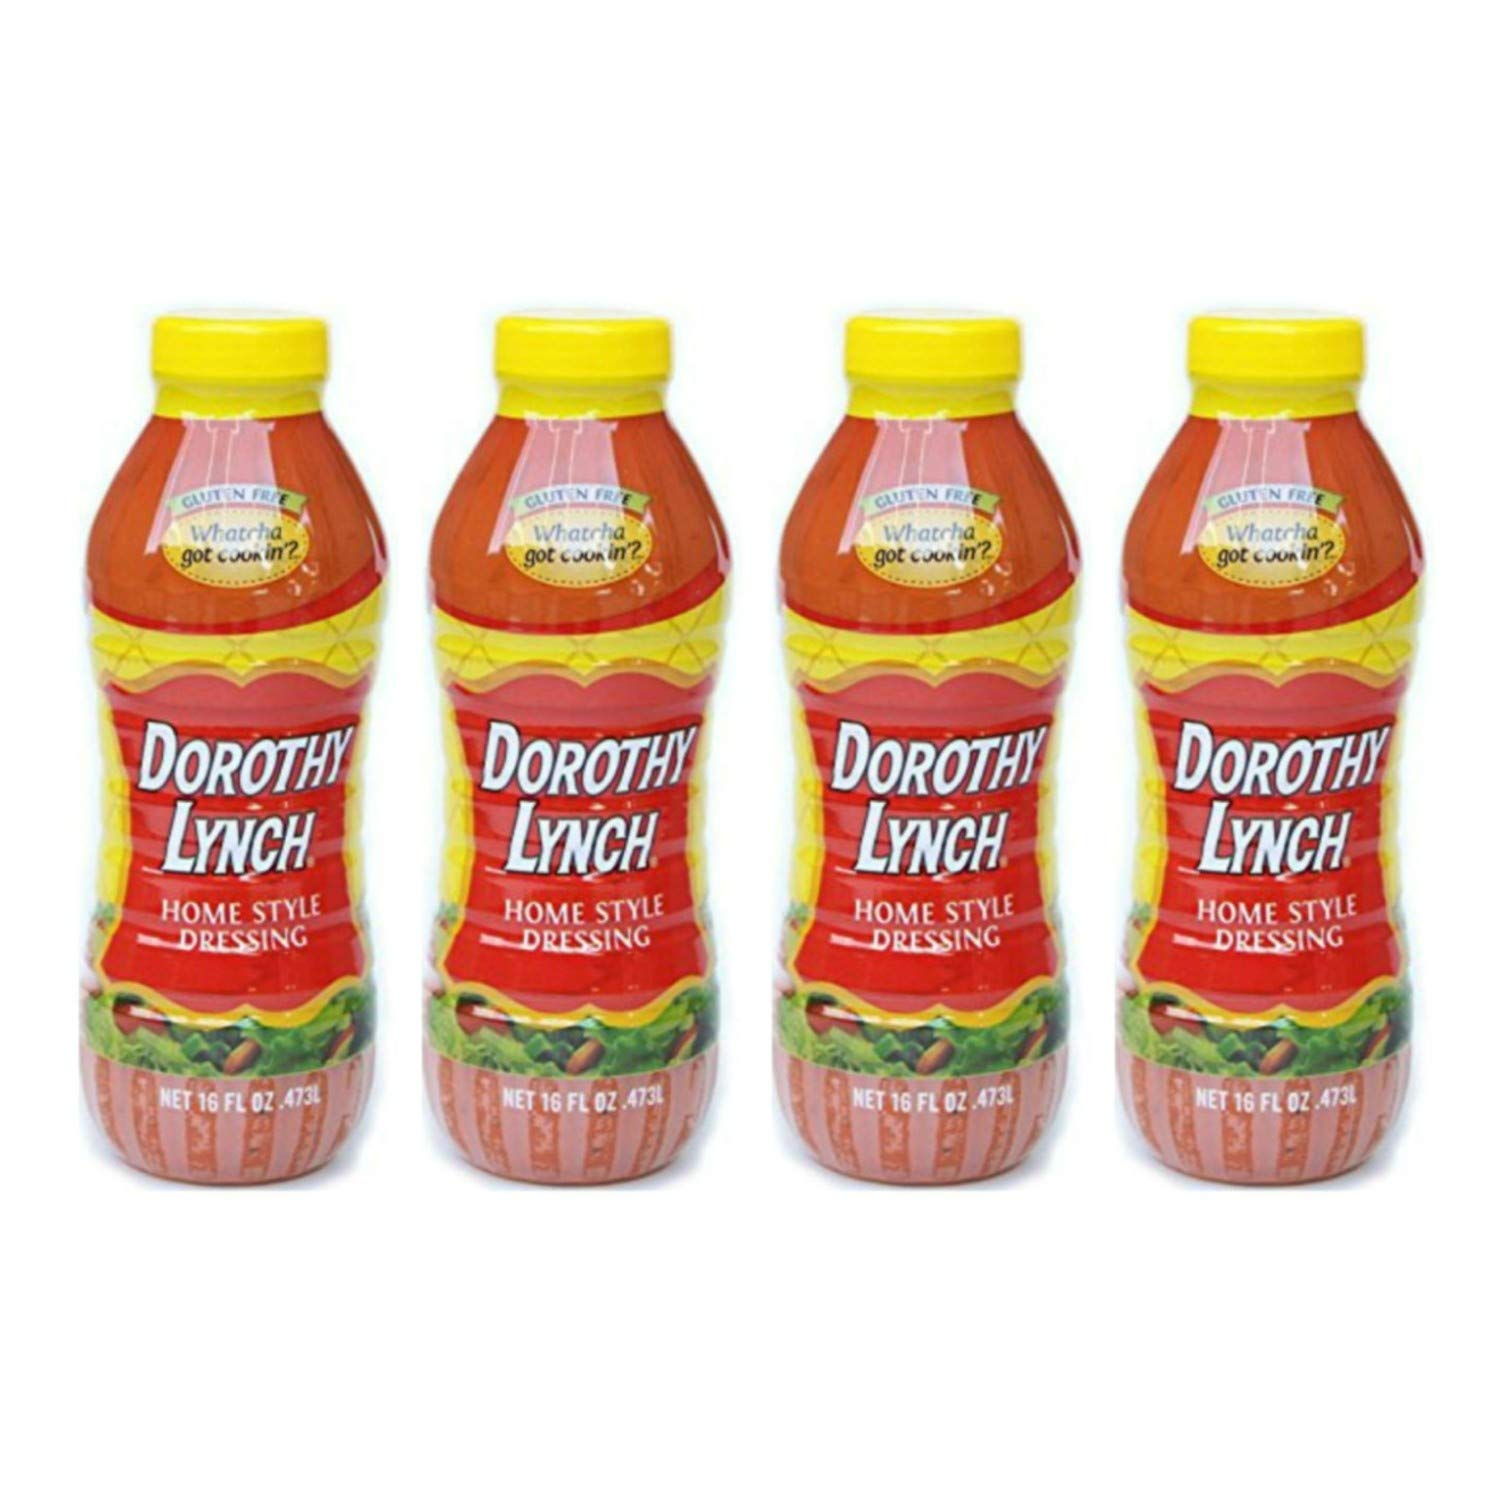 Dorothy Lynch Homestyle Dressing 16 oz   Pack of 4   Gluten Free   No MSG or Trans Fat   Best Dressing & Condiment   Made In USA